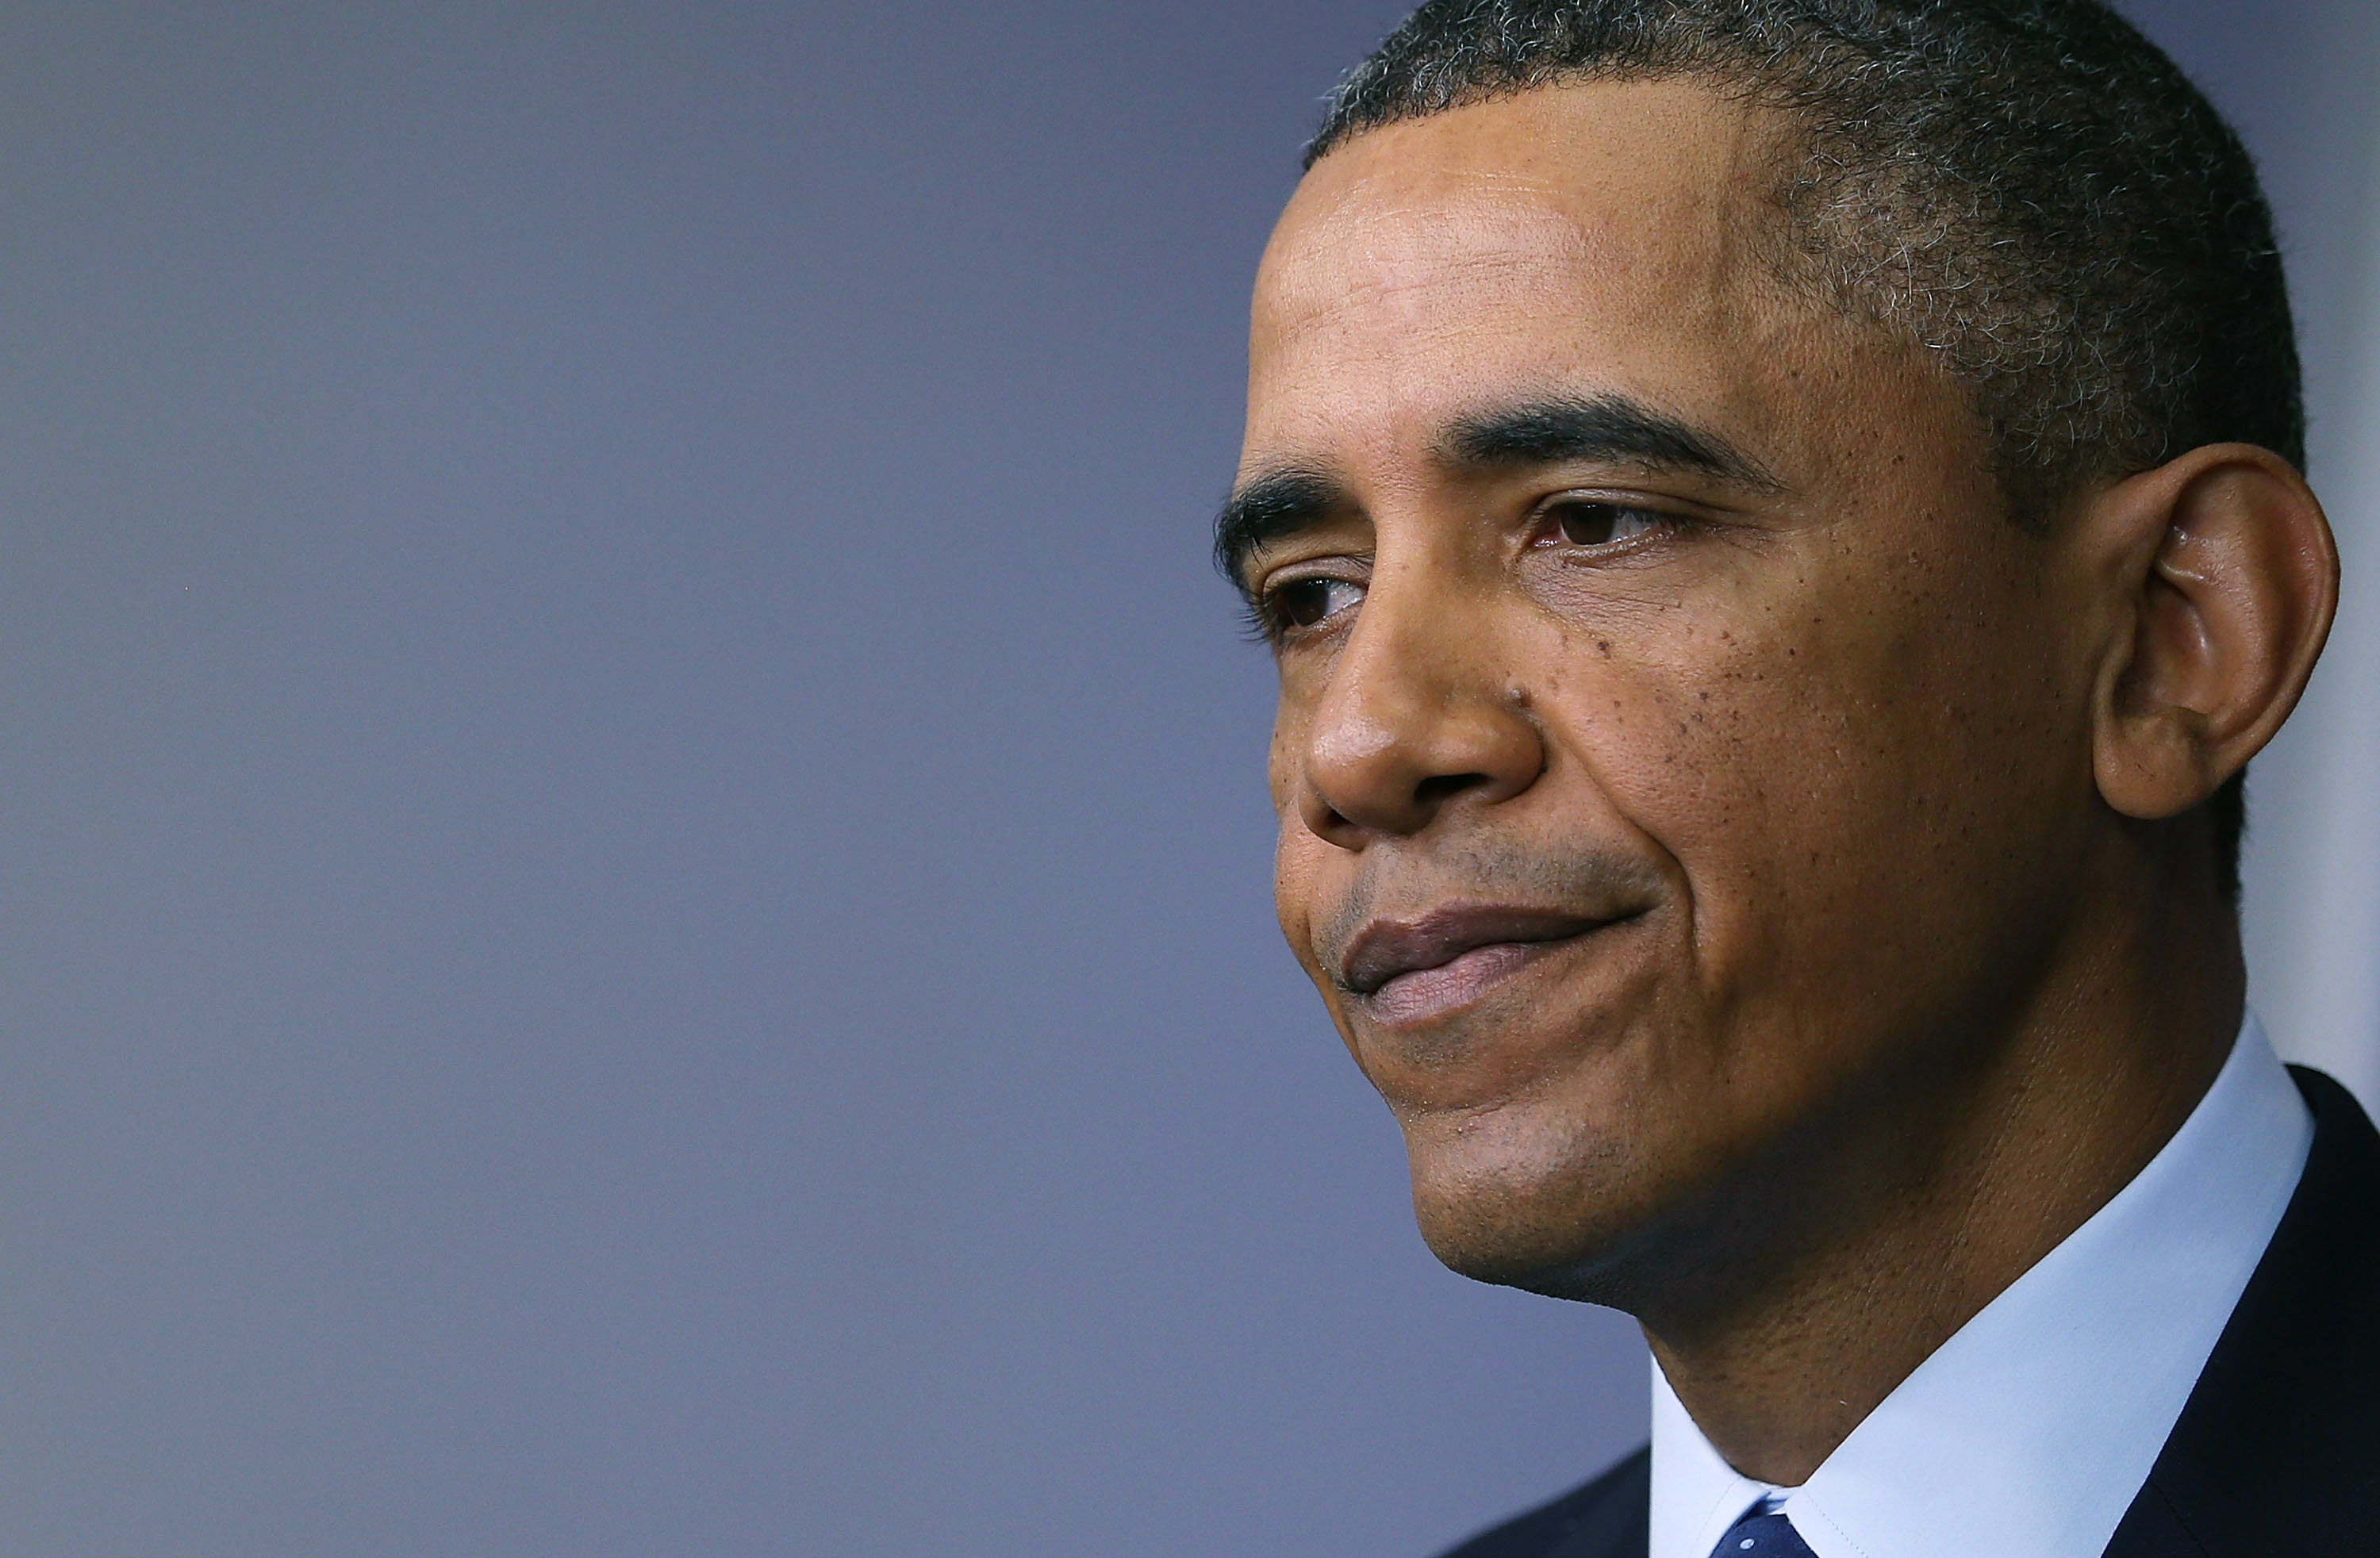 Election 2012: Are We Expecting Too Much from the POTUS?